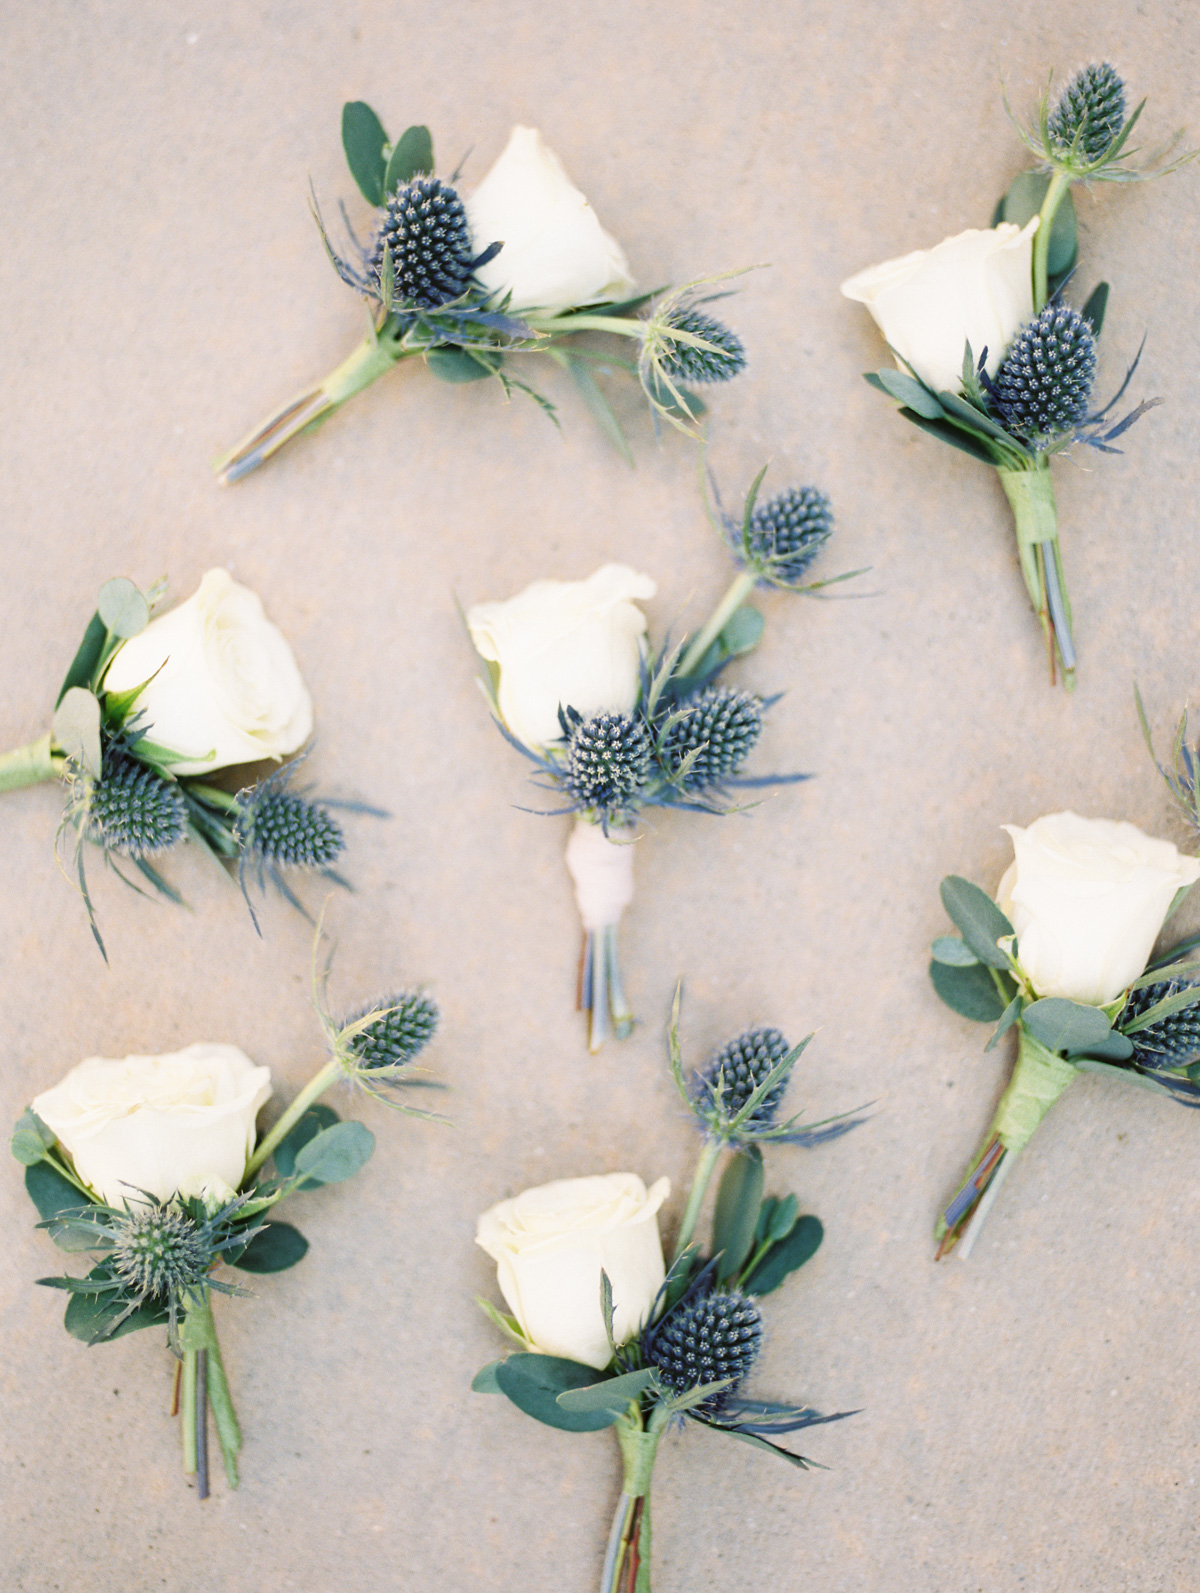 Lovely blue thistle boutonniere's by Soriee Design and Events | Harrison & Jocelyne's gorgeous Temecula wedding at Wiens Family Cellars captured by Betsy & John Photography